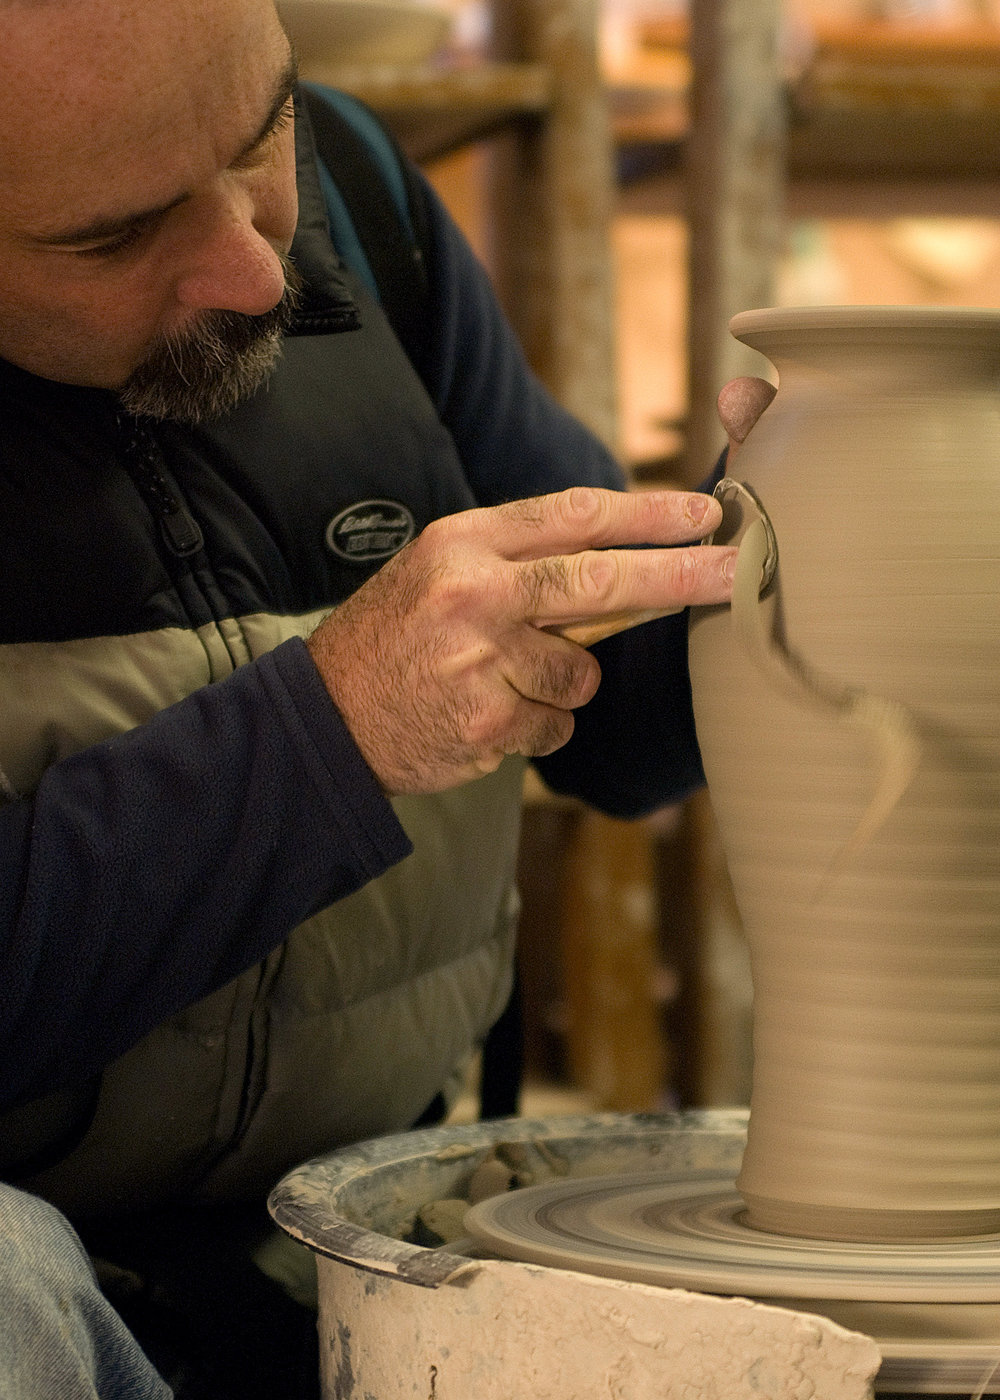 Putting finishing touches on a vase.